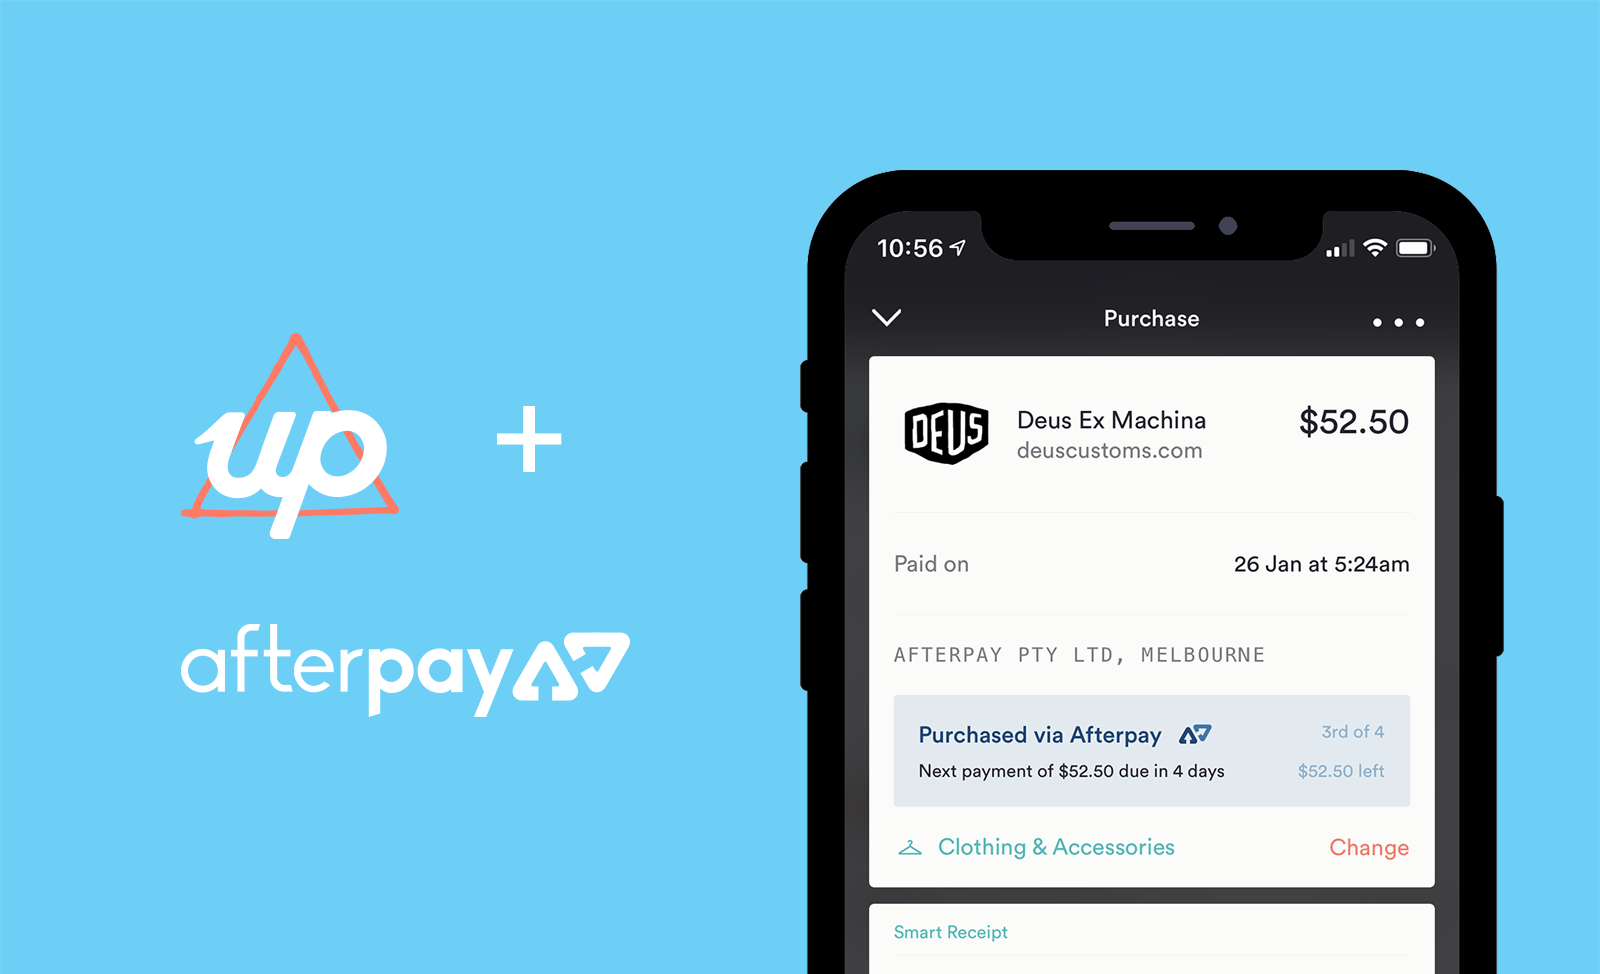 Up and AfterPay are now connected